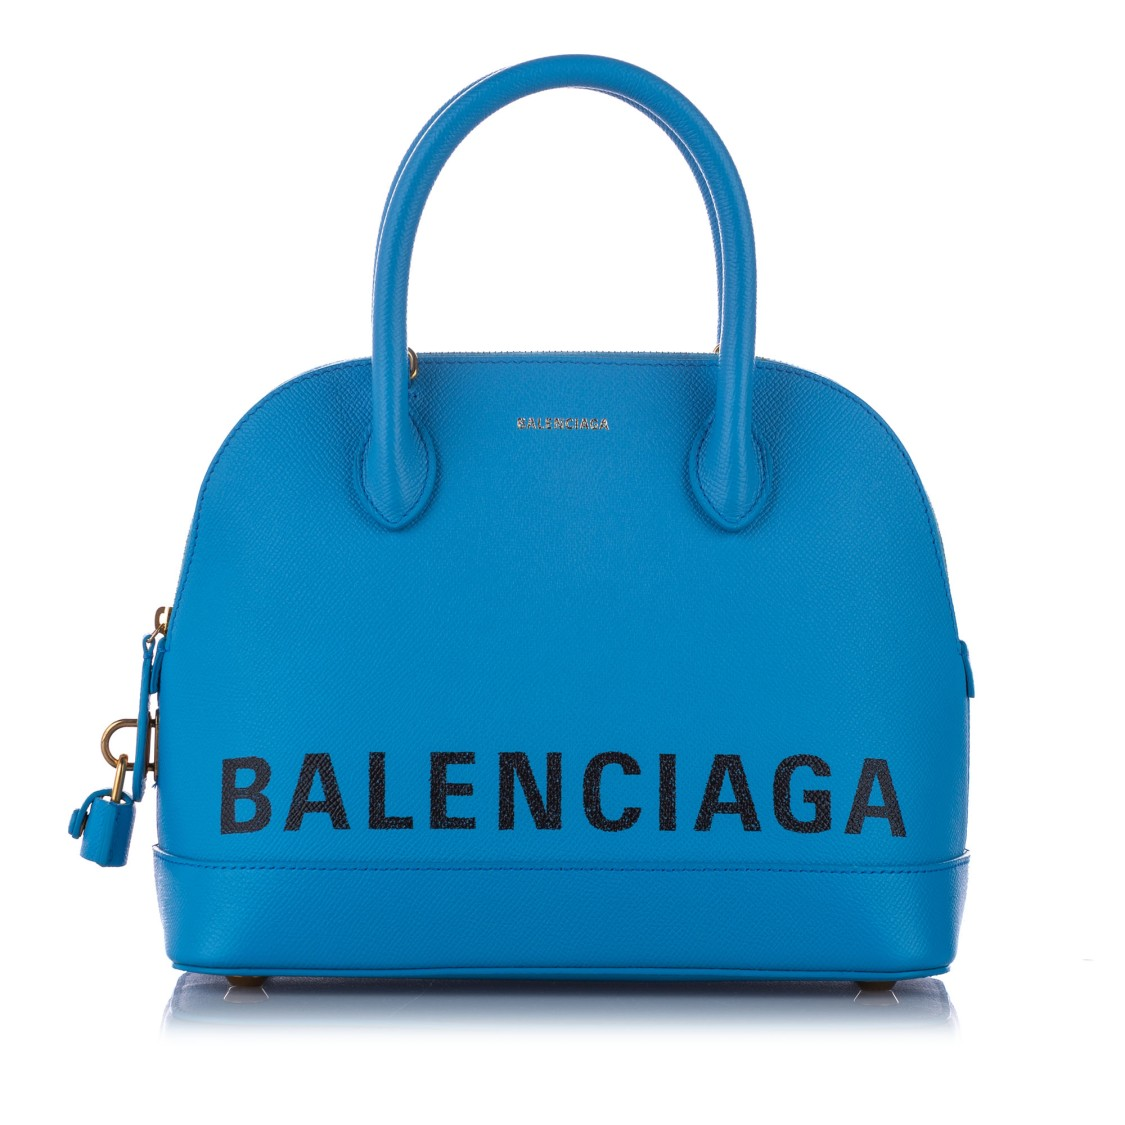 Balenciaga VILLE LEATHER SATCHEL